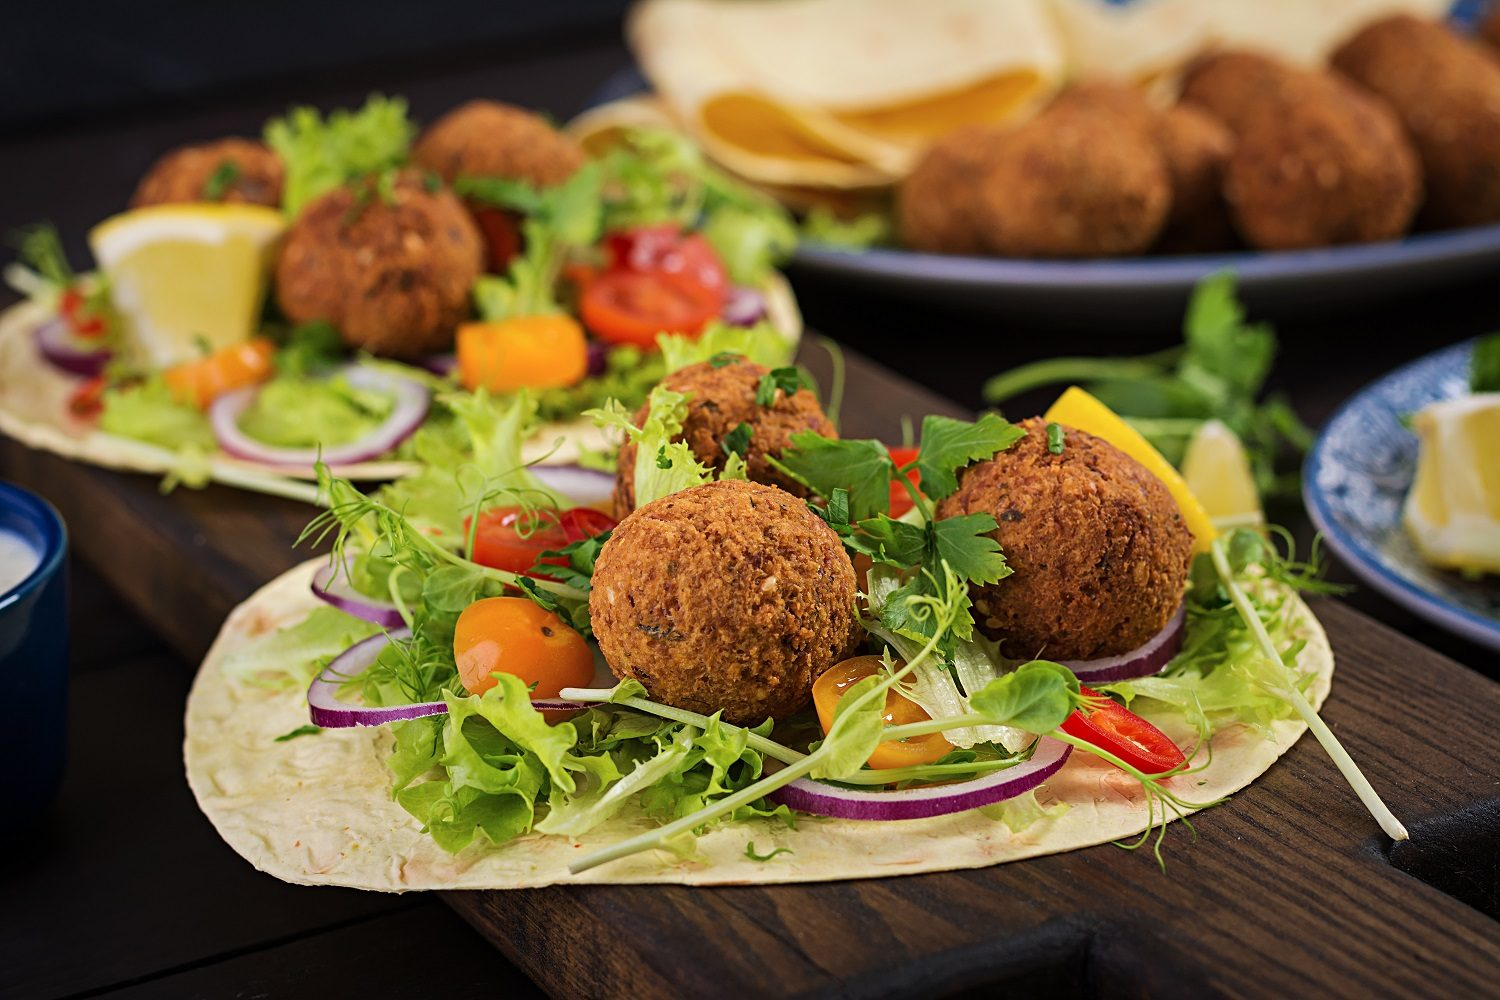 chifteluțe falafel ca la Sara Green. Tortilla wrap with falafel and fresh salad. Vegan tacos. Vegetarian healthy food.